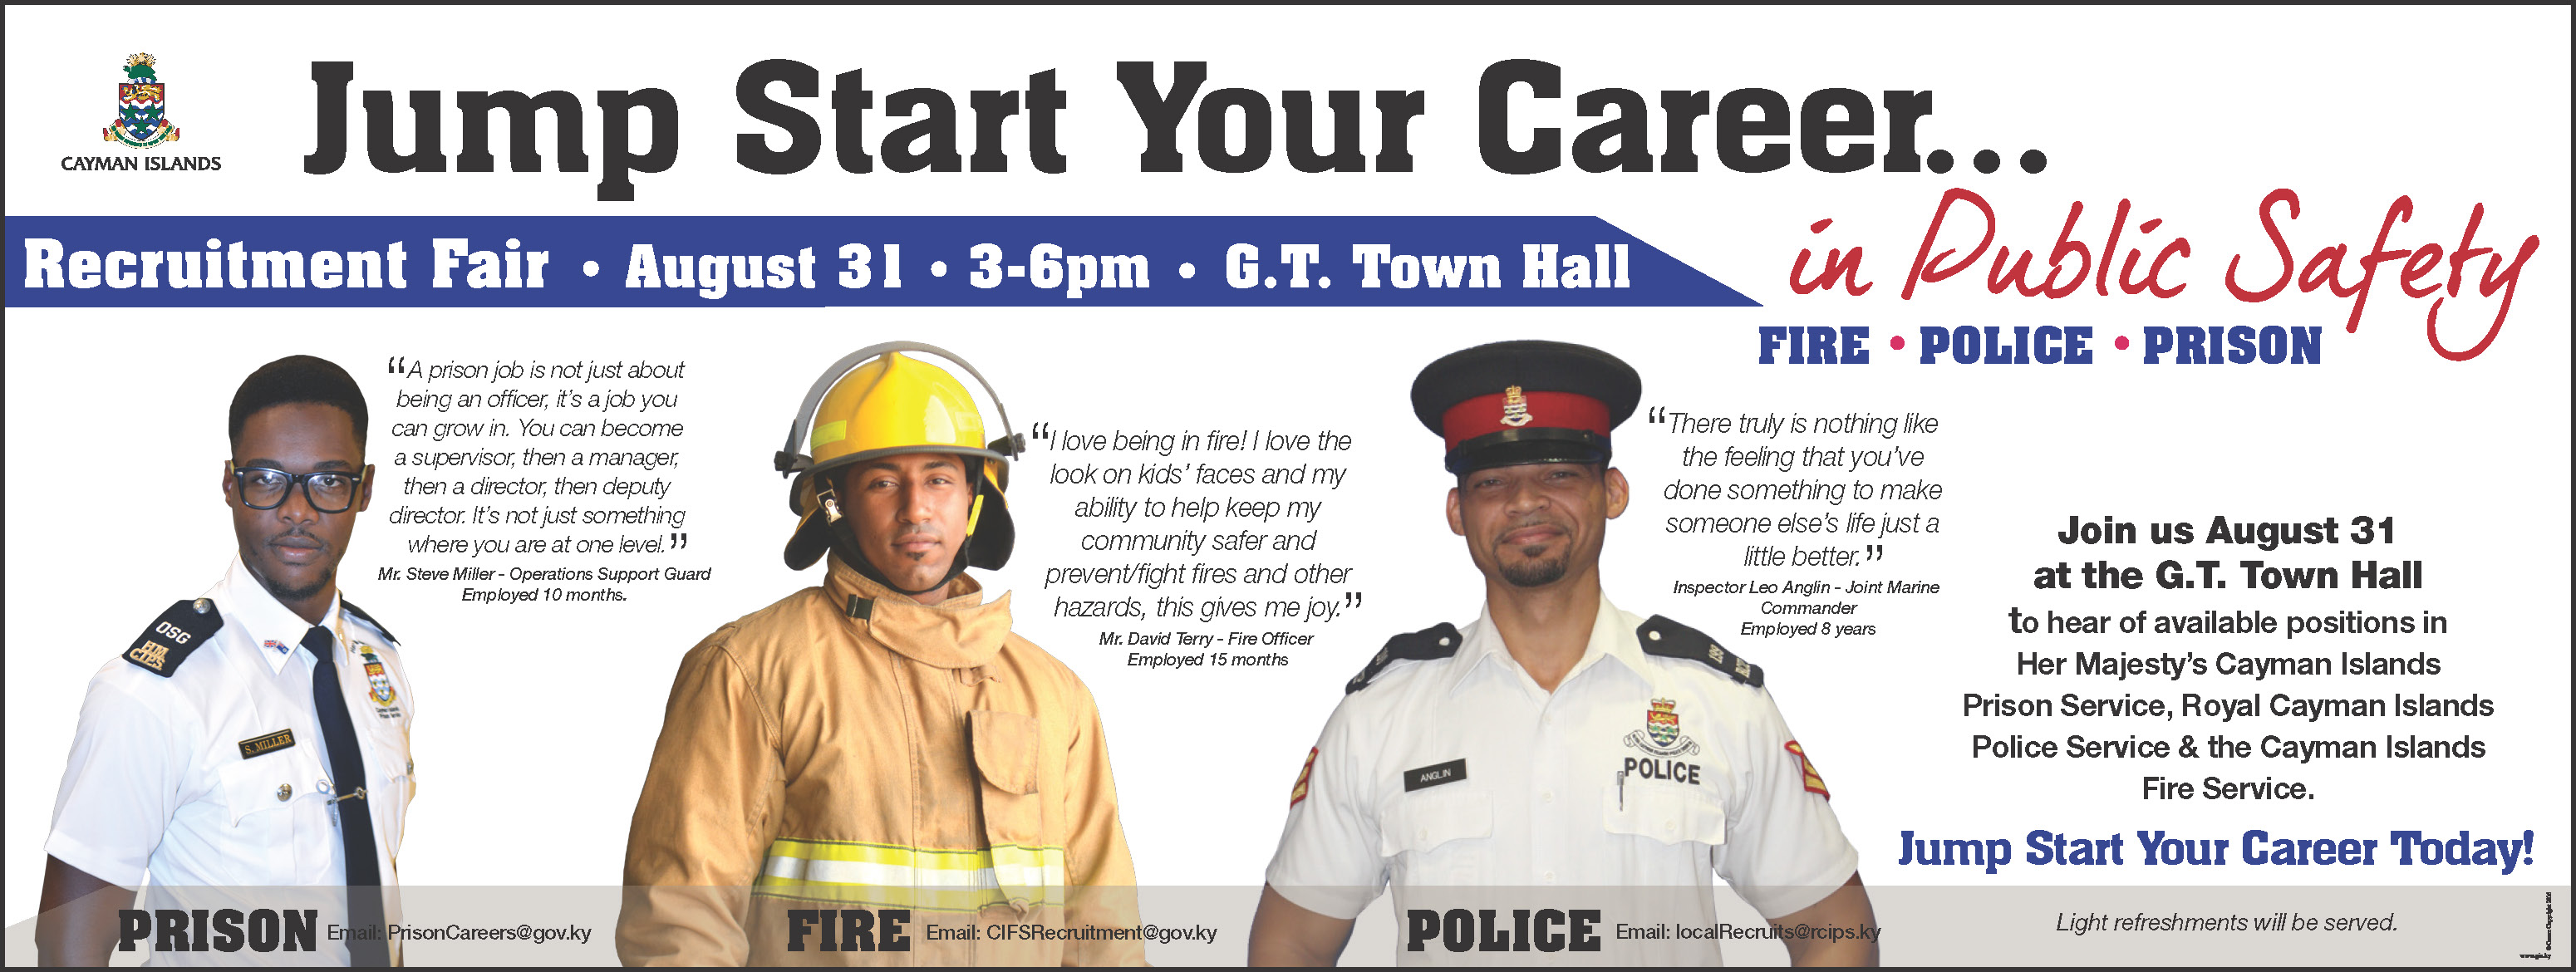 A joint job fair will take place to hire local law enforcement officers and firefighters.